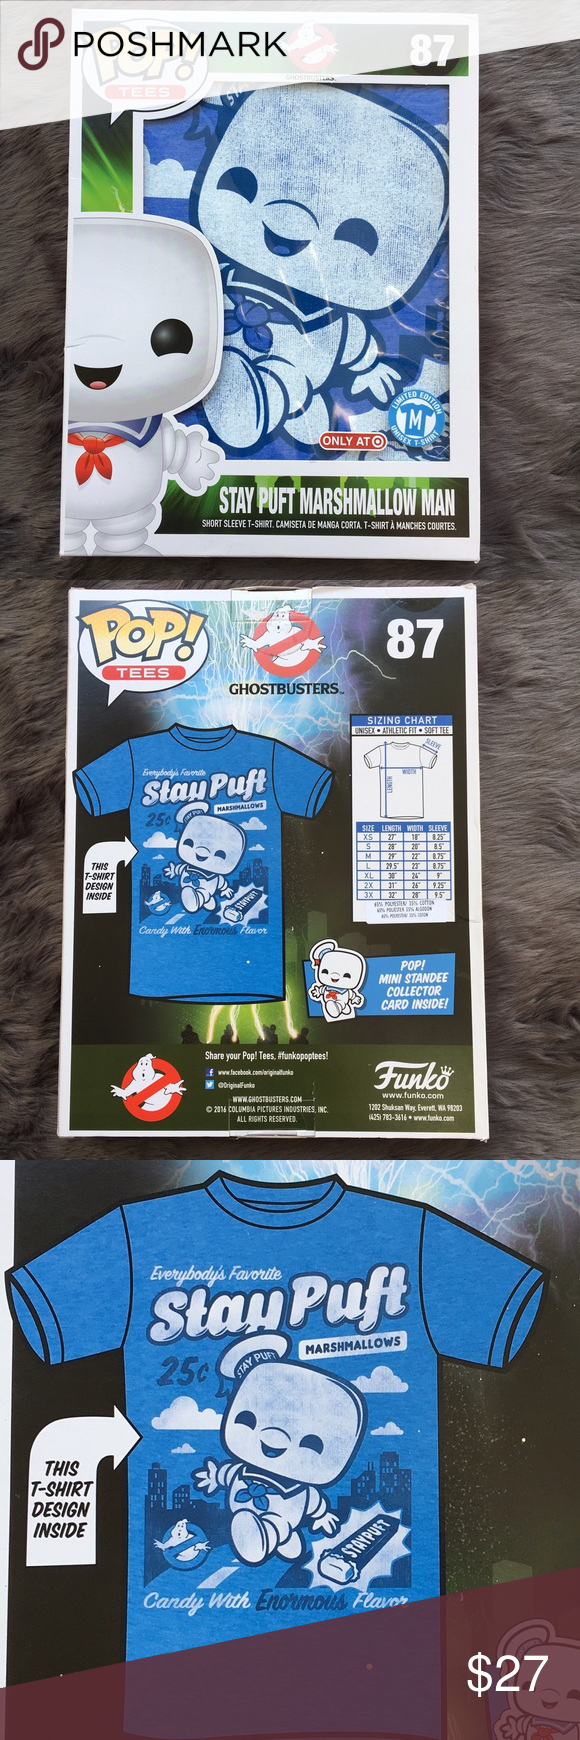 🎁 Pop! Tees Stay Puft Marshmallow Man Stay Puft Marshmallow Man Limited Edition unisex t-shirt Has a mix of blues & white to creat this fun Ghostbusters print. Boxed short sleeve t-shirt is 65% Polyester & 35% Cotton. In excellent new condition and never opened. NWT Funko Shirts Tees - Short Sleeve